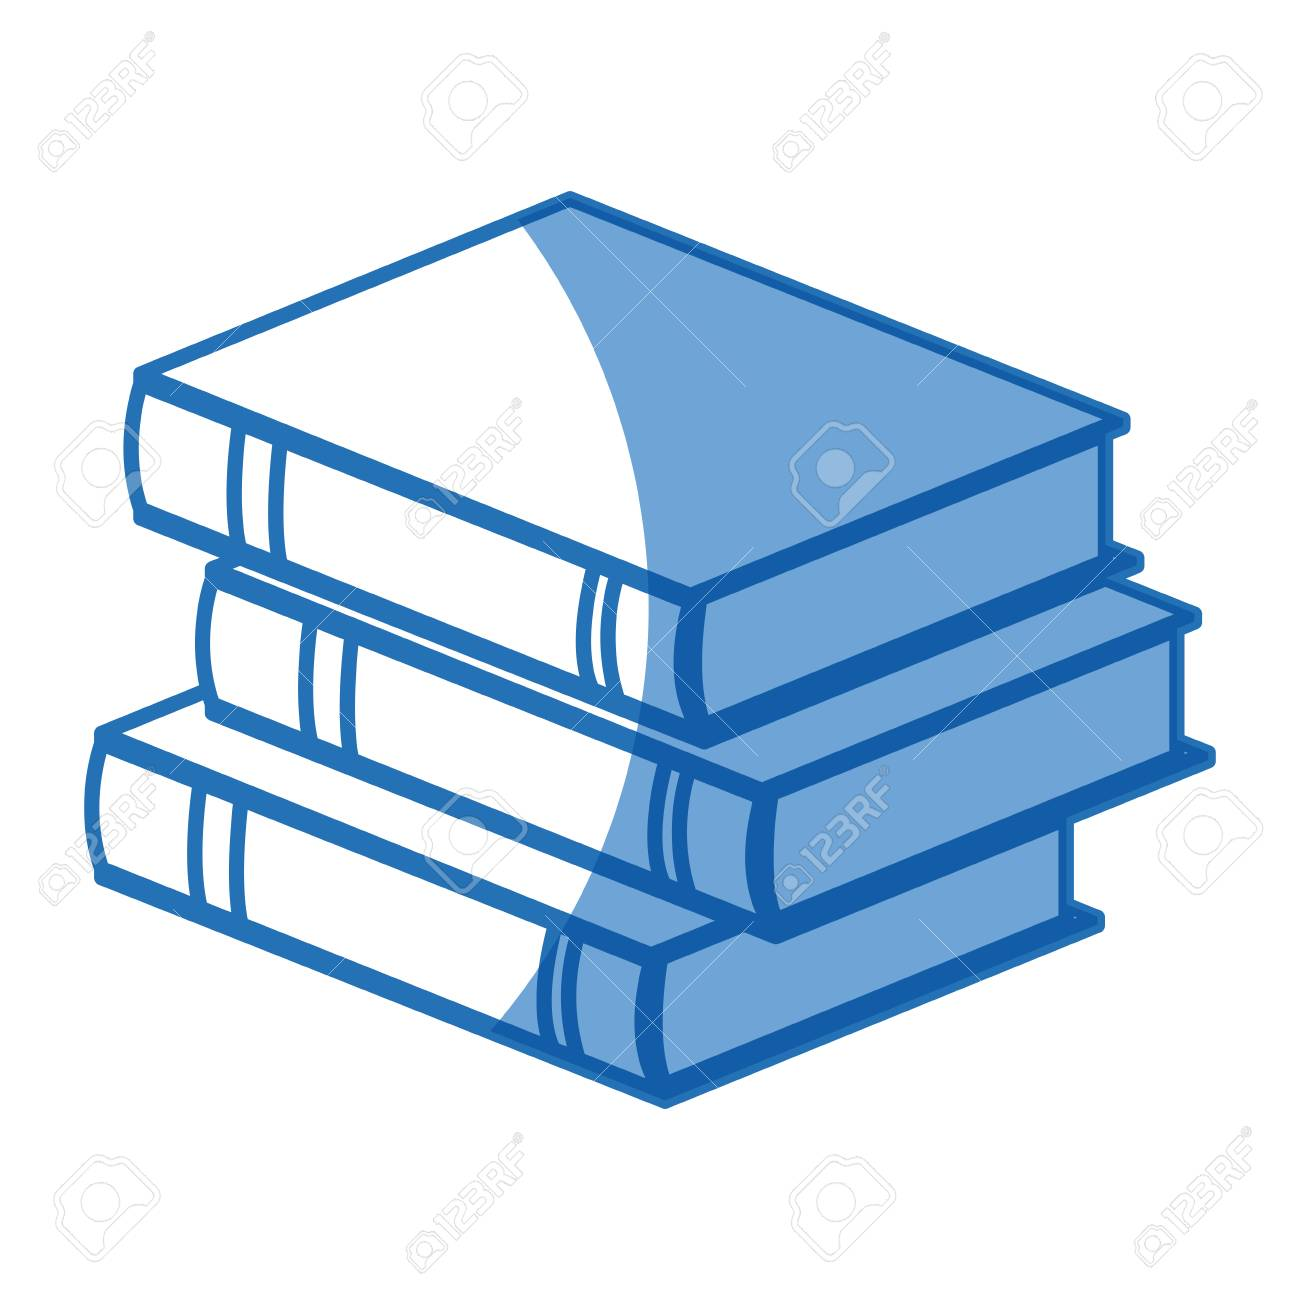 Pile Livre Litterature Apprentissage Etude Vector Illustration